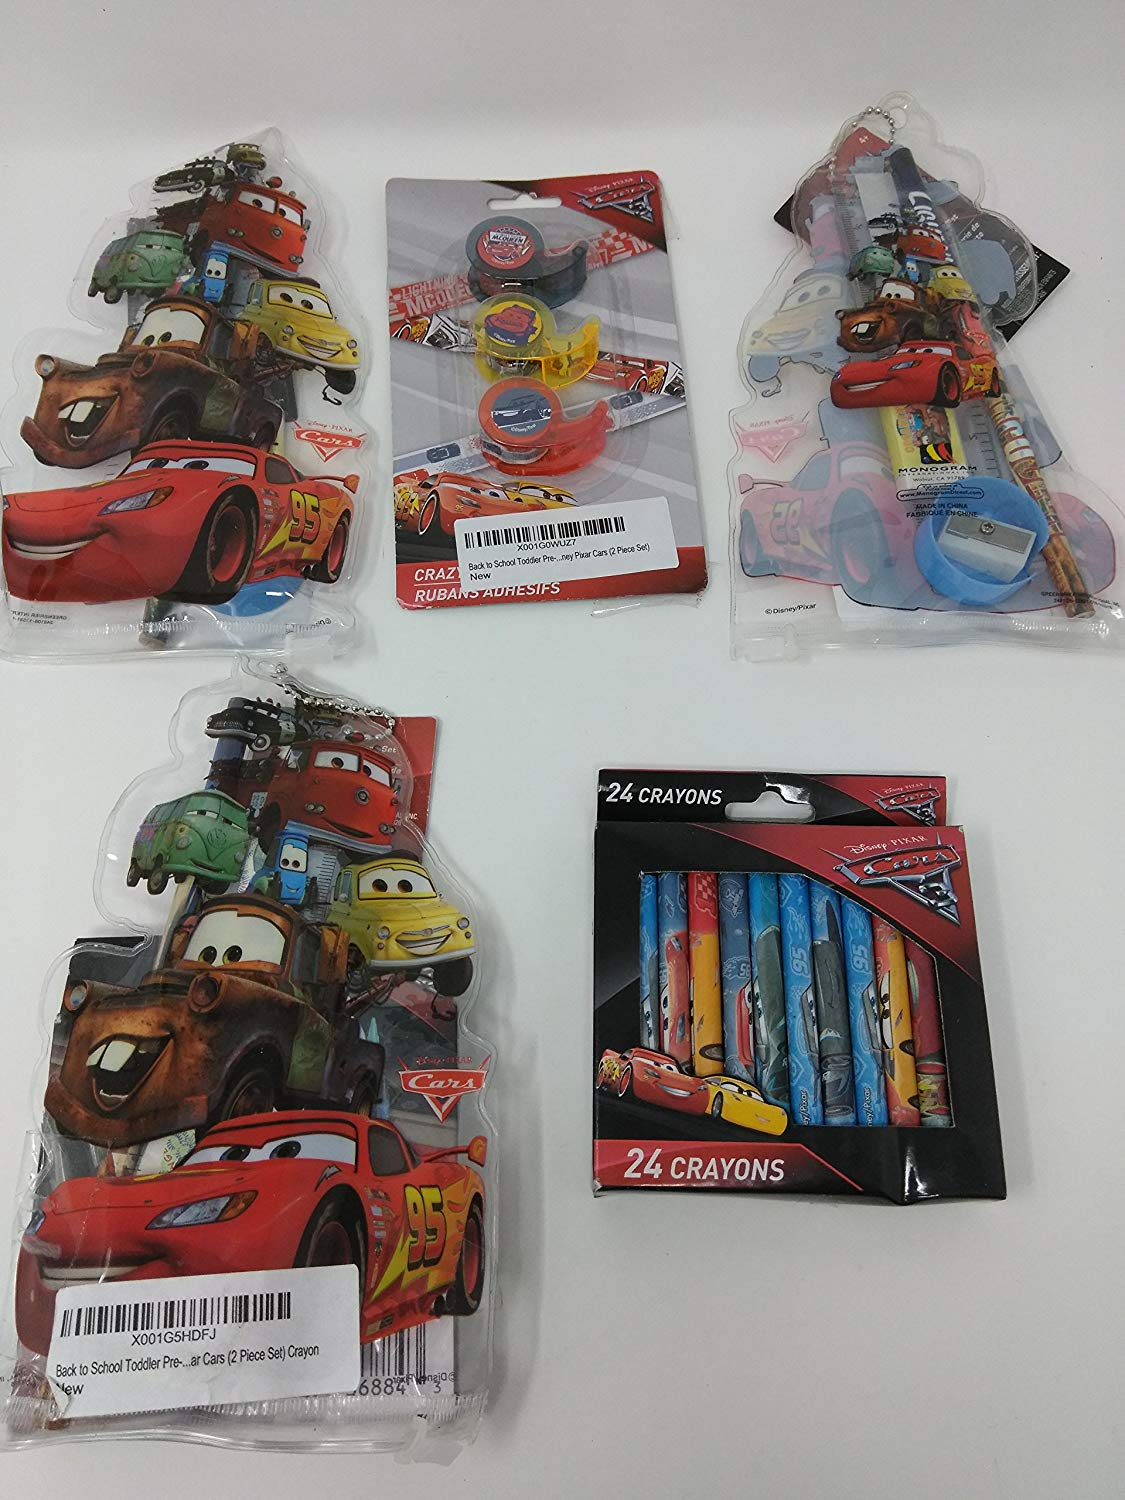 Back to School Toddler Pre-school Elementary School Supplies Pencils Sharpener Border Trim Awards Pixar Car Bundle of 4 Tape